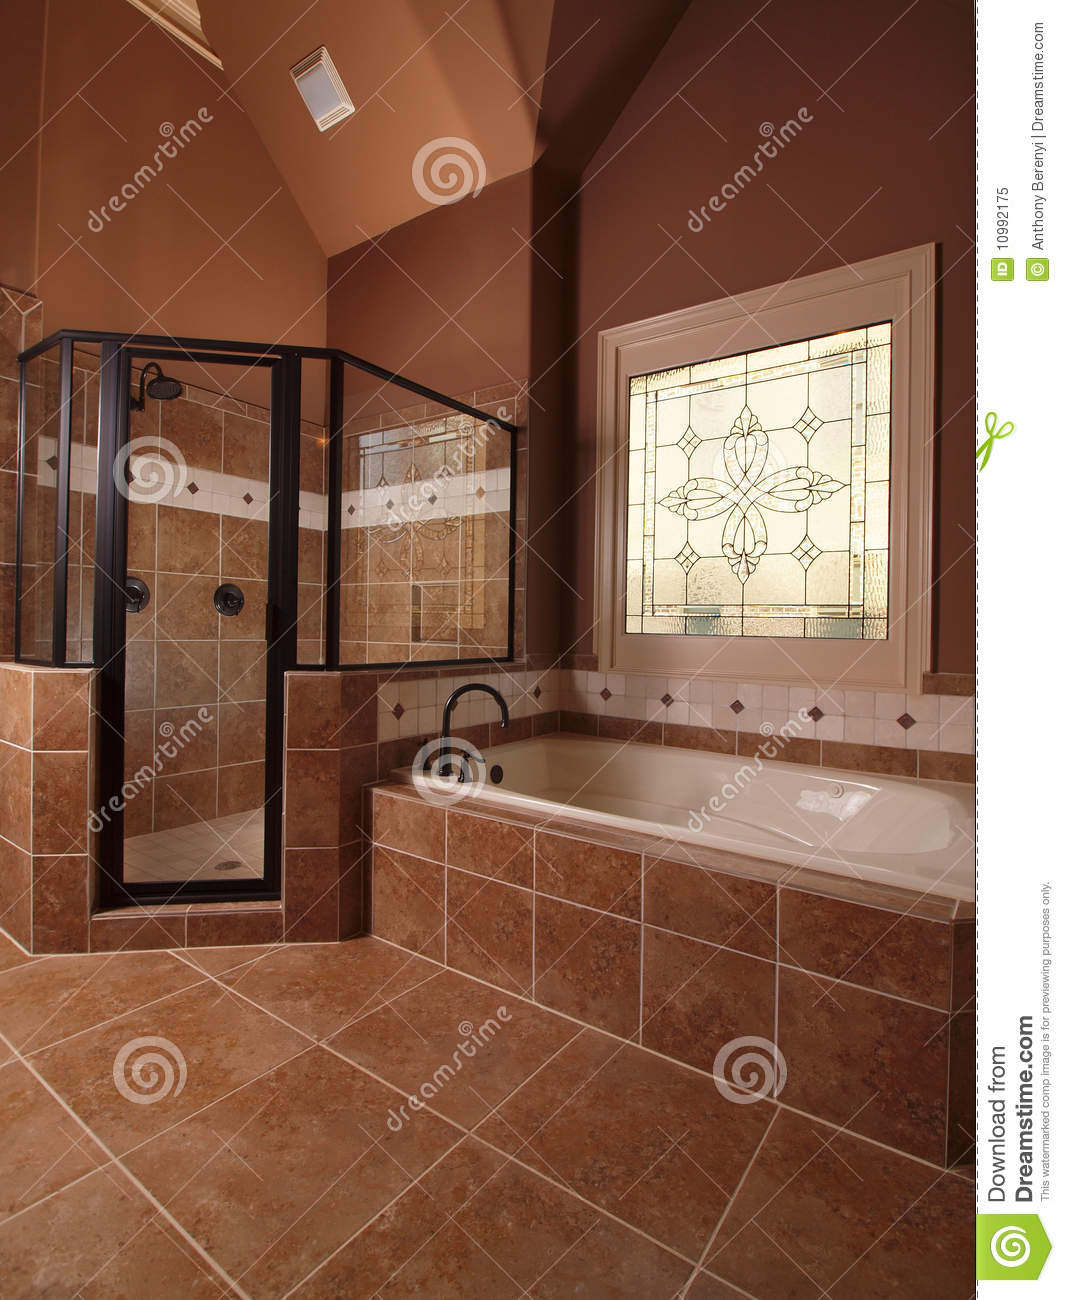 Tinas De Baño De Azulejo:Bathroom Tile with Window